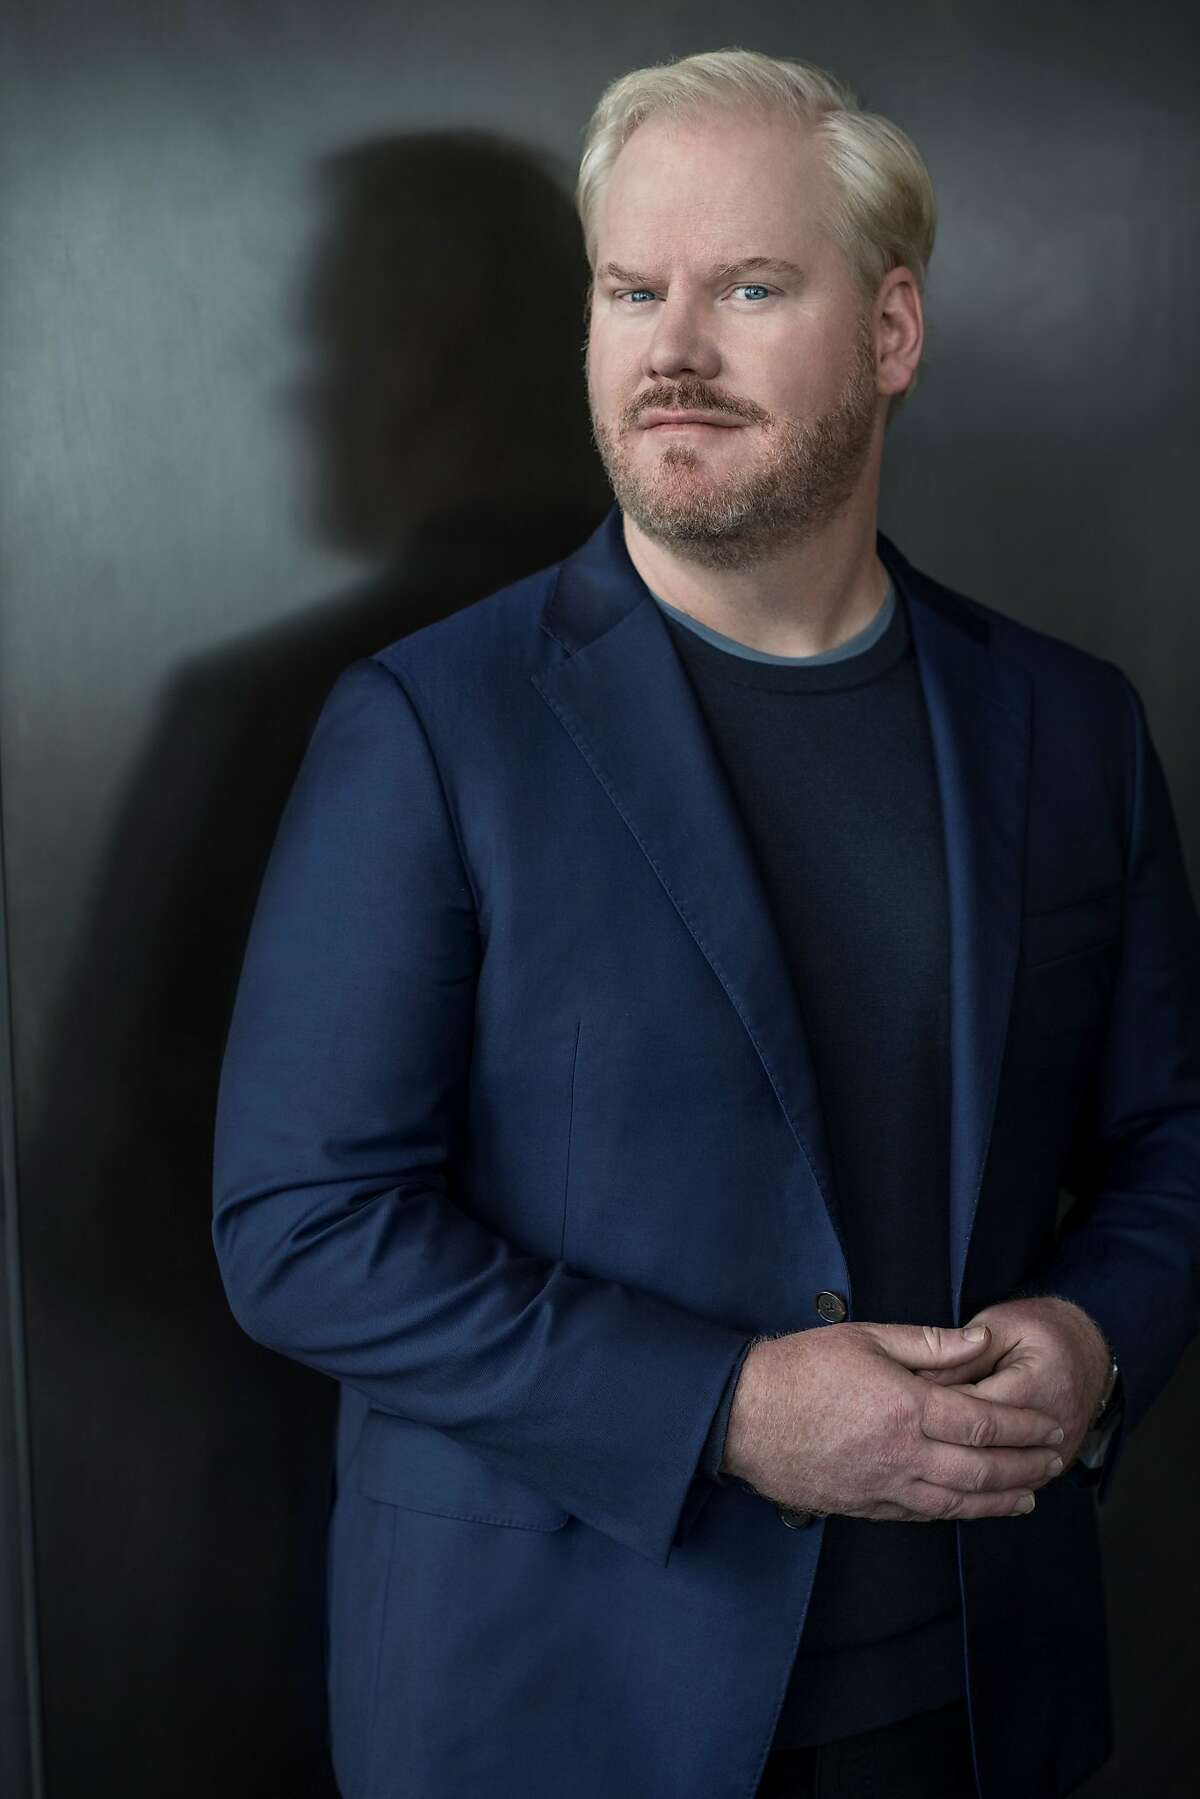 Jim Gaffigan will perform in his wholesome way at Shoreline Amphitheatre on Sunday, Sept. 17.